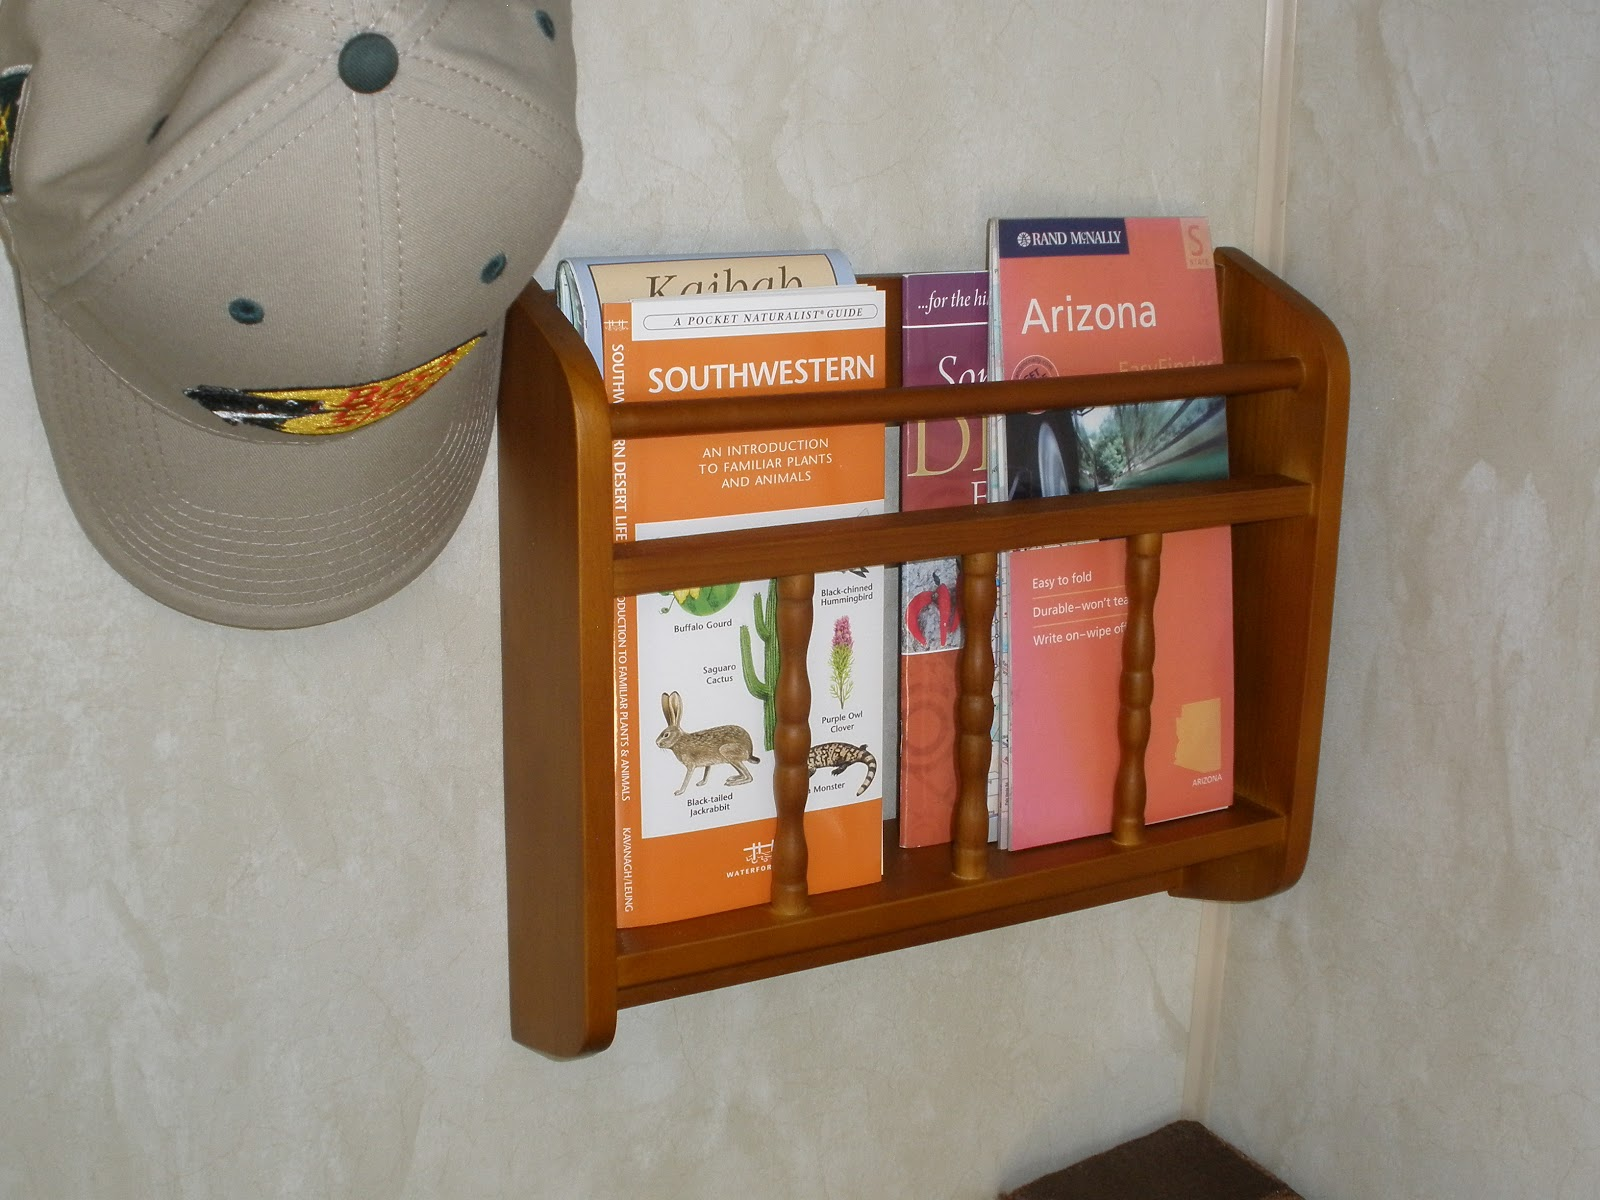 cascade loading magazine is image brochure holder literature rack mount display itm phamphet wall